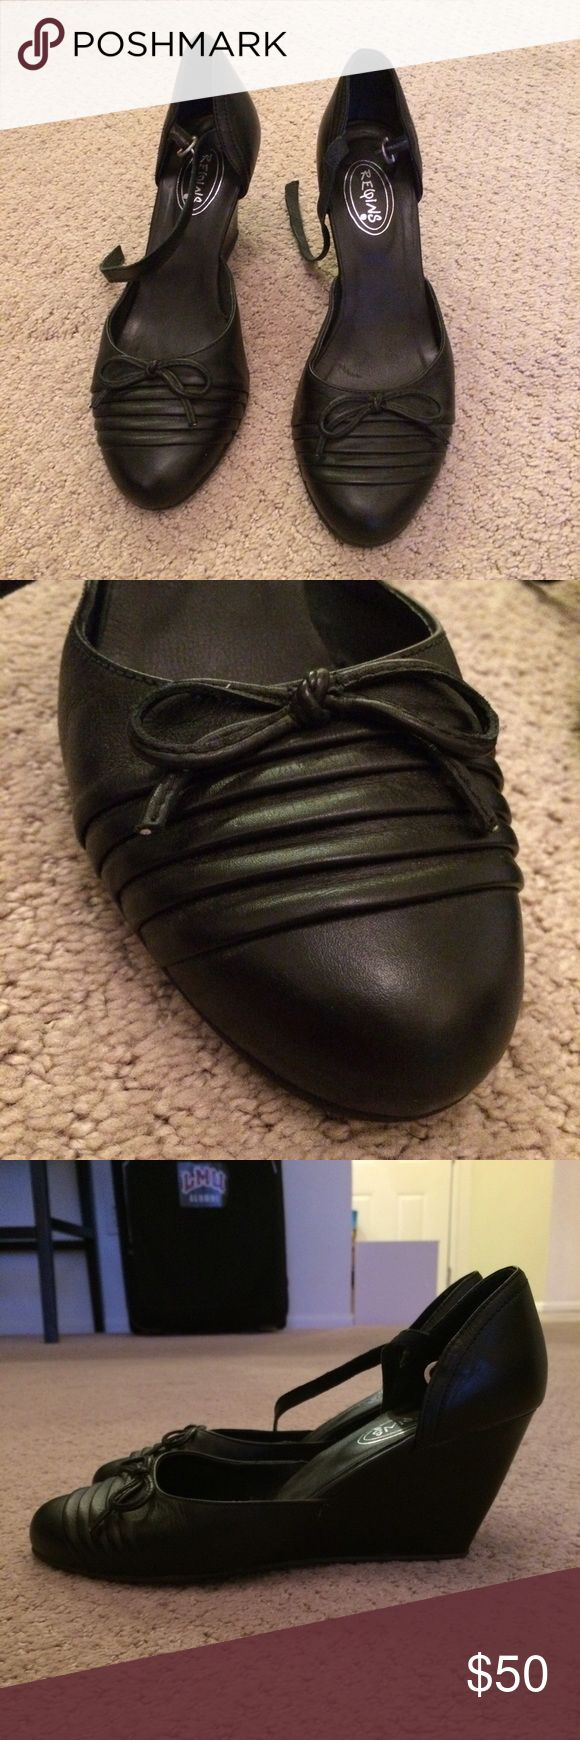 👠 Italian Shoes Wedges size 8 👠 Perfect condition Italian shoes Shoes Wedges